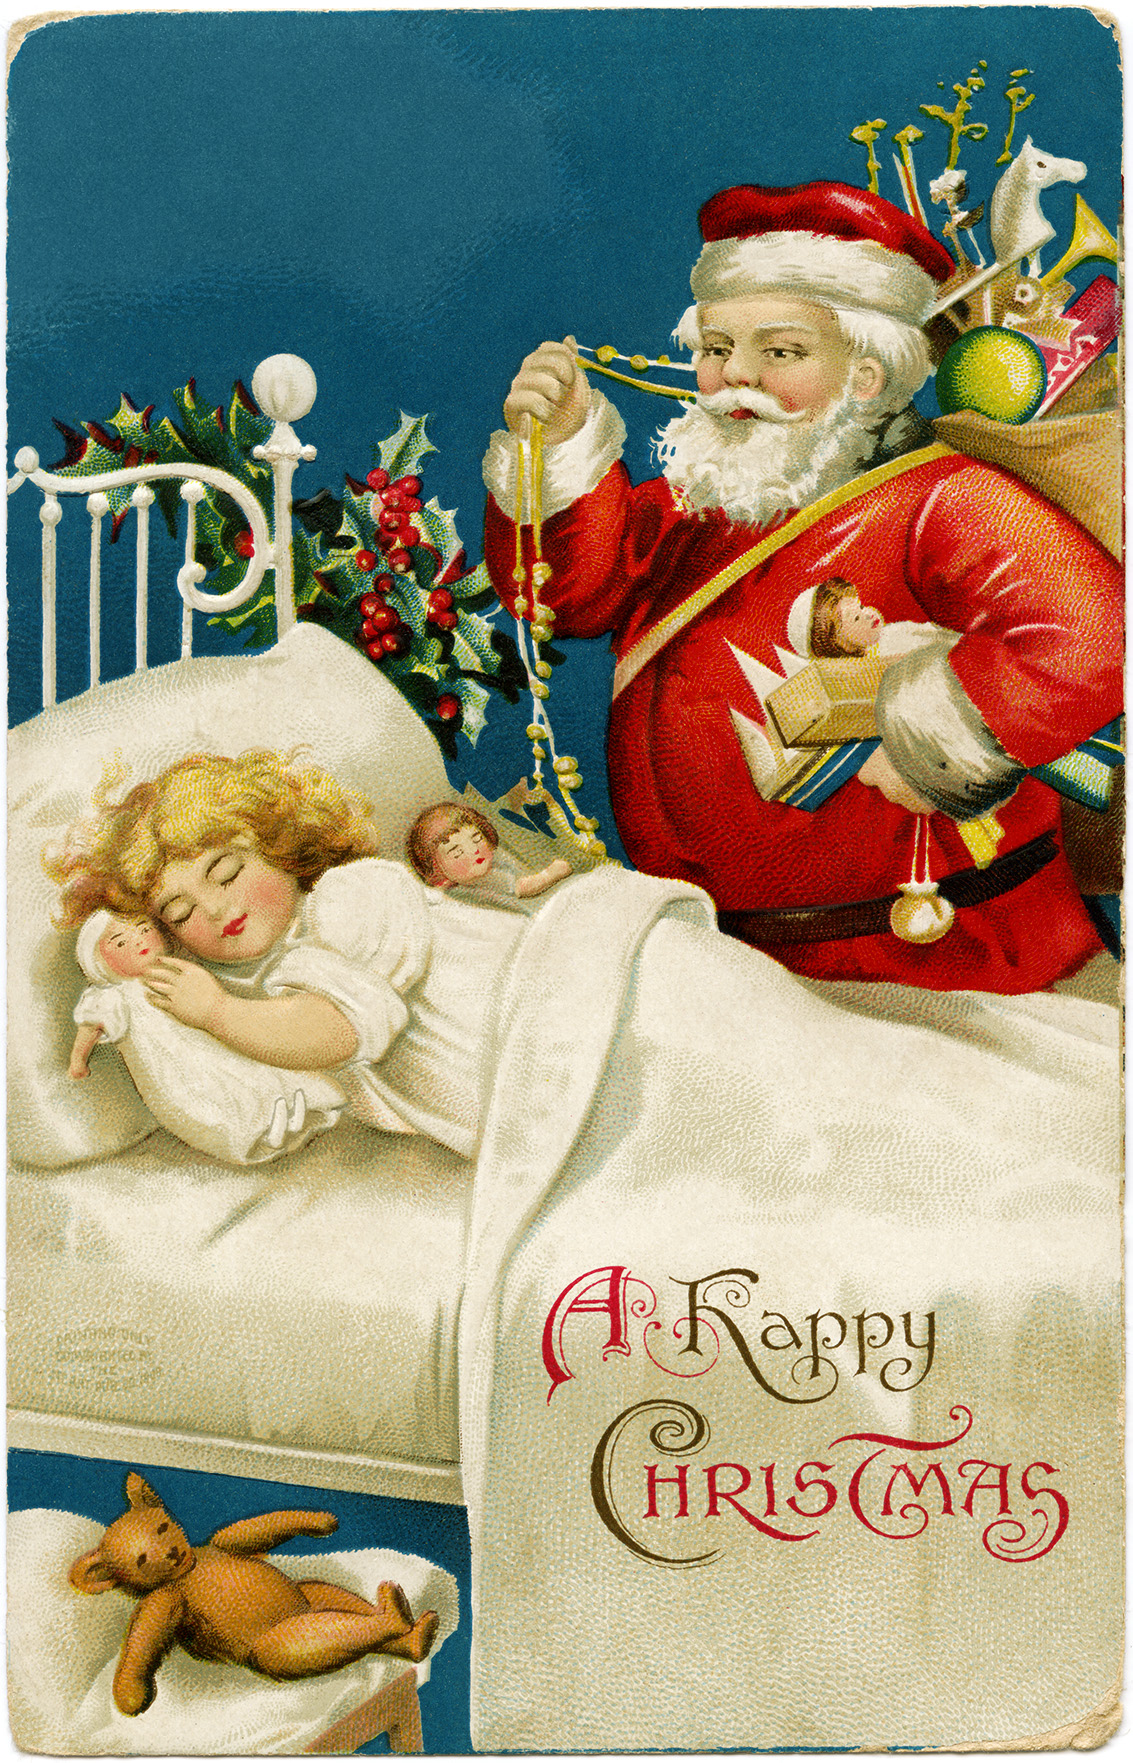 vintage clapsaddle postcard, santa girl sleeping, old fashioned christmas card, santa with bag of toys, printable vintage christmas